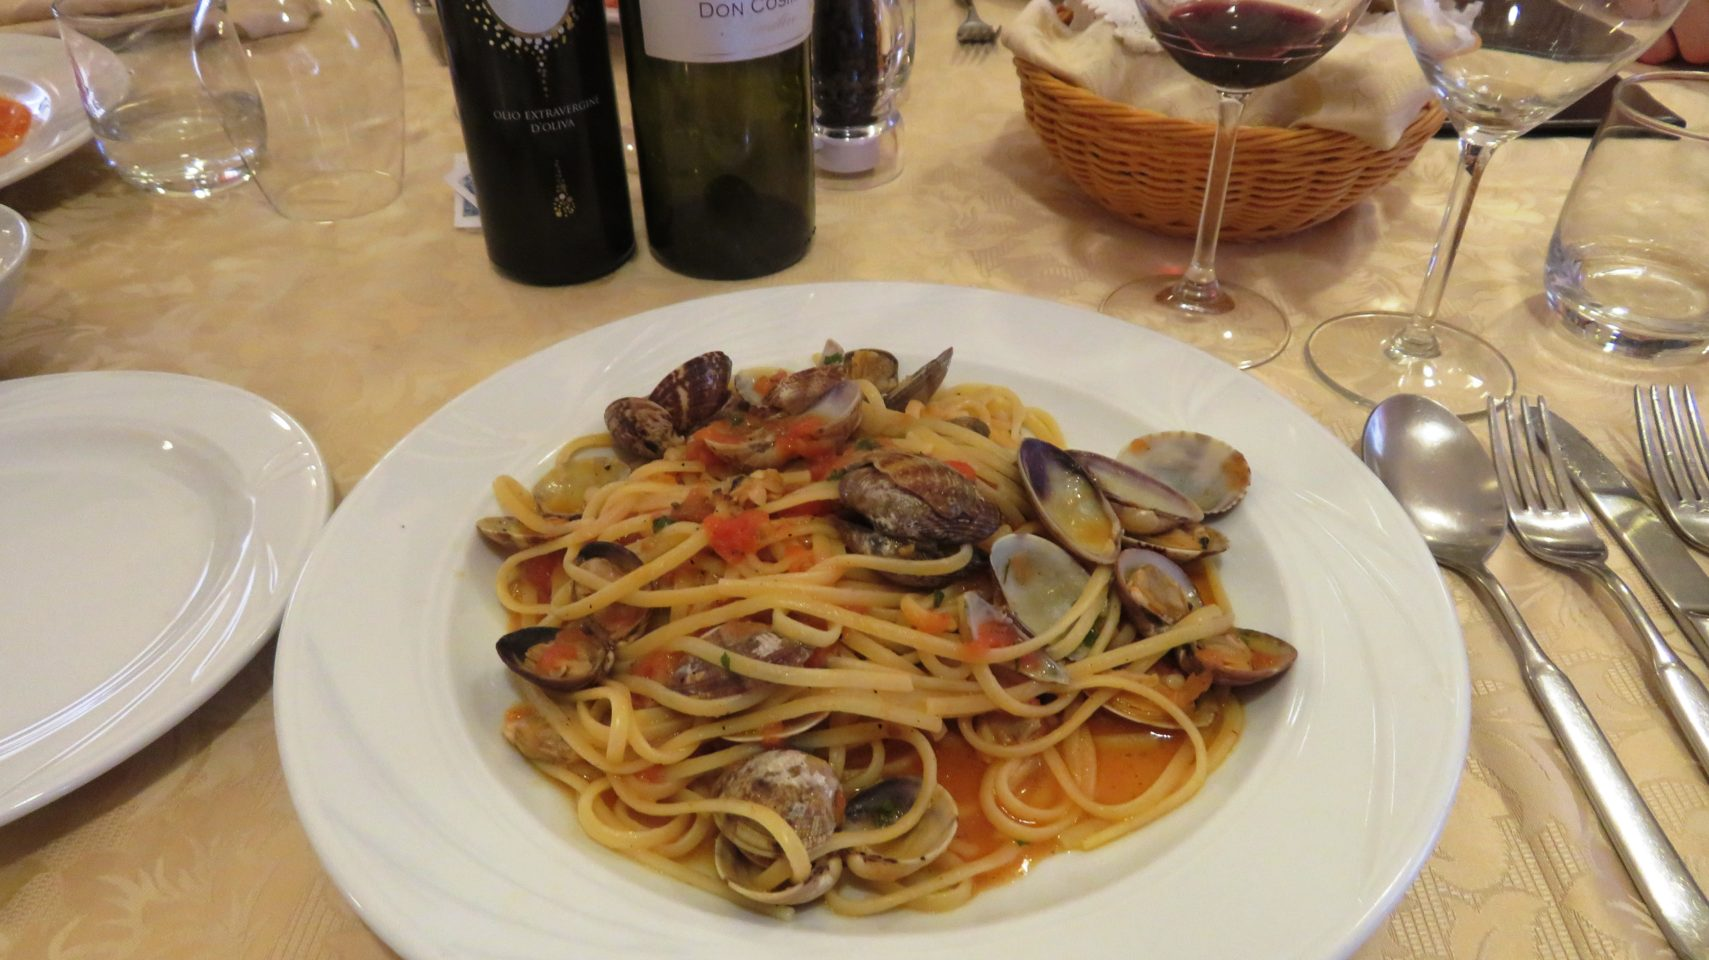 Succulent lunch platter at Ristorante L'Aura in Cocumola ~ The Wholesome Charms of Salento in Italy